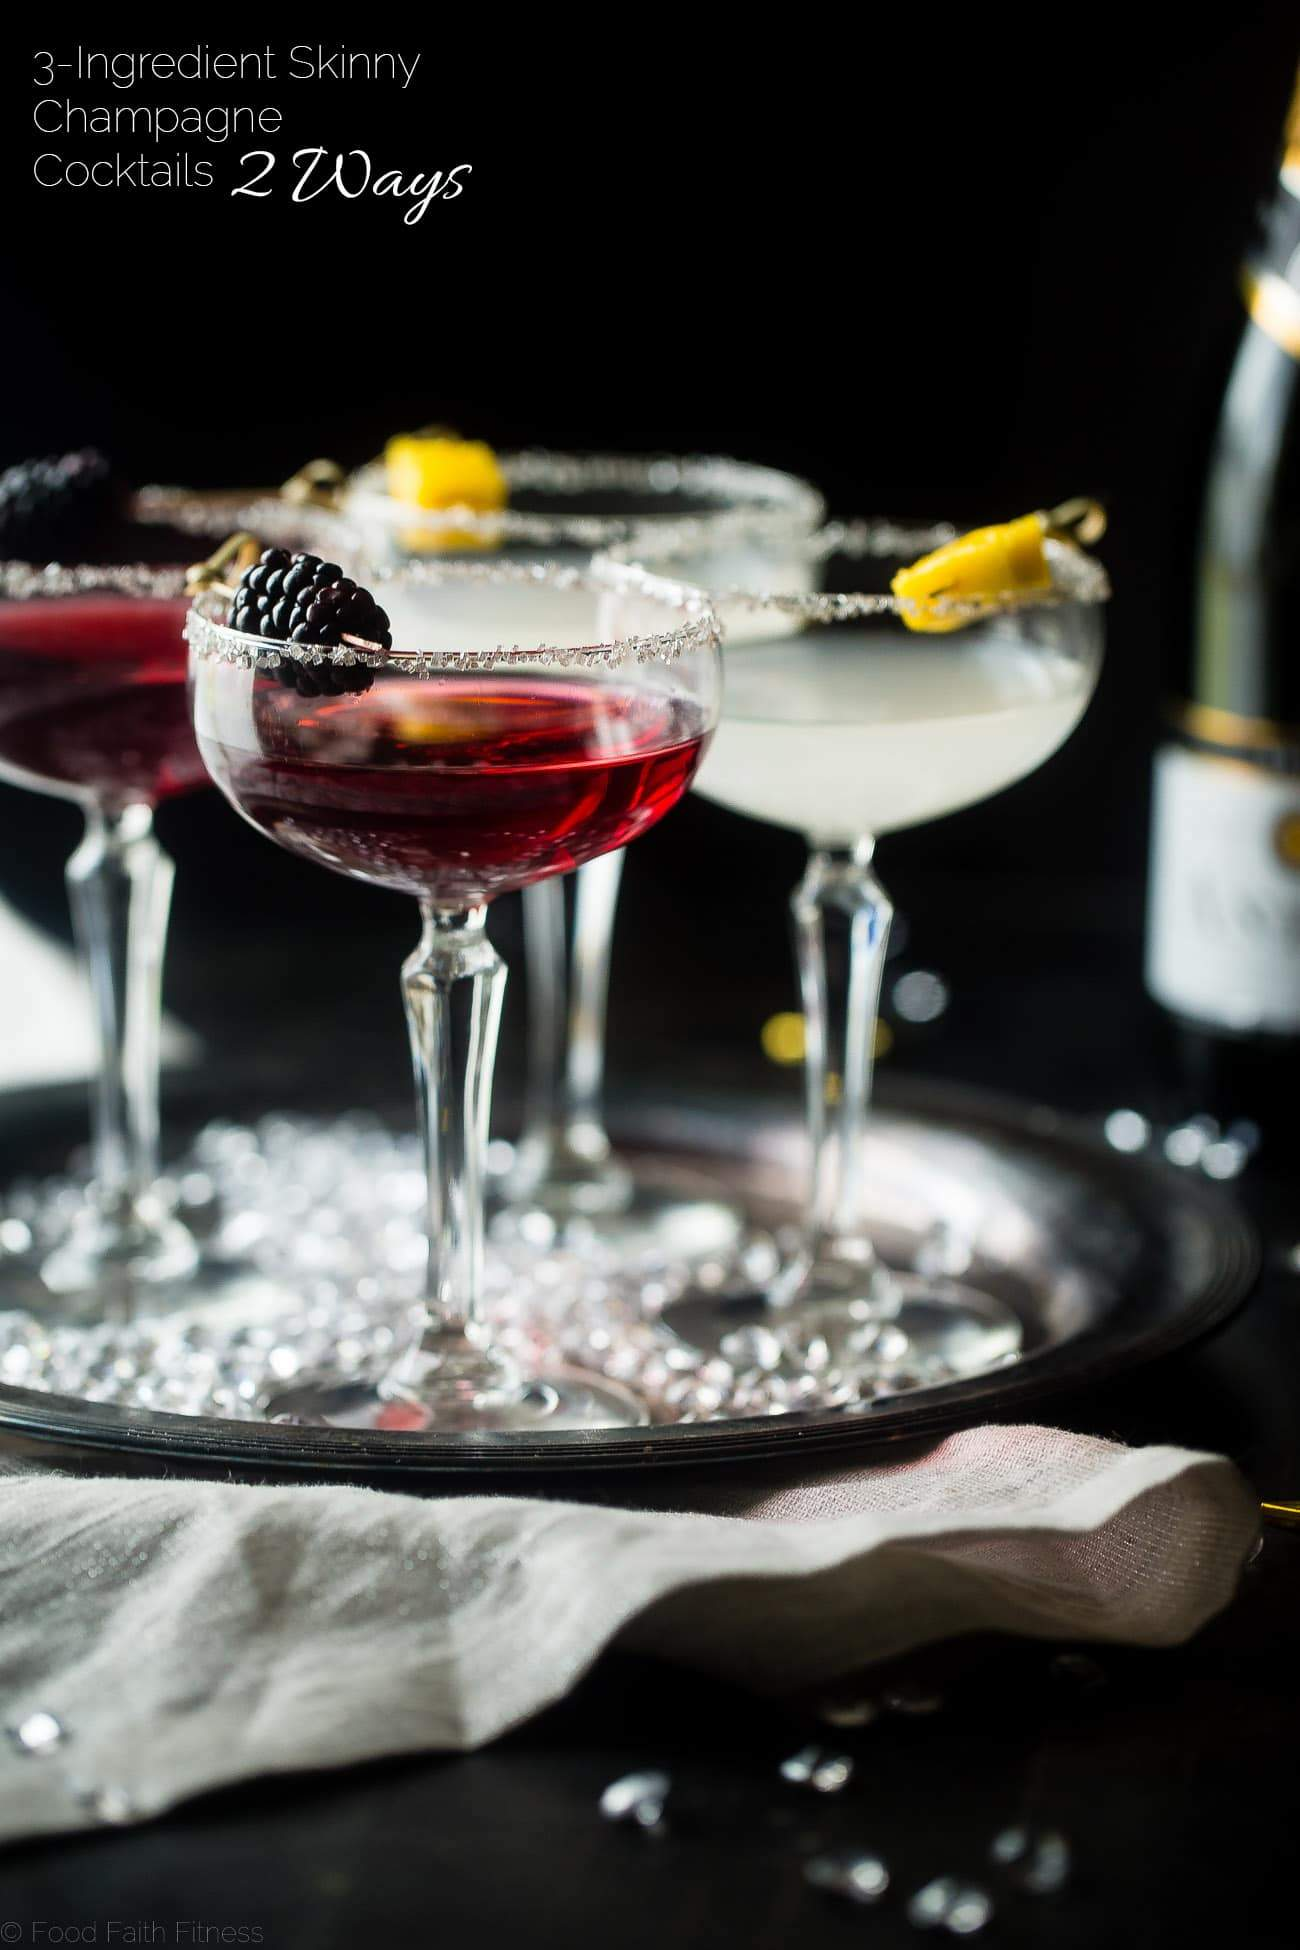 3 Ingredient Skinny Champagne Cocktails - Both of these blackberry raspberry and mango coconut sparkling champagne cocktails are under 150 calories and are naturally sweetened! Perfect for a healthy NYE! | Foodfaithfitness.com | @FoodFaithFit